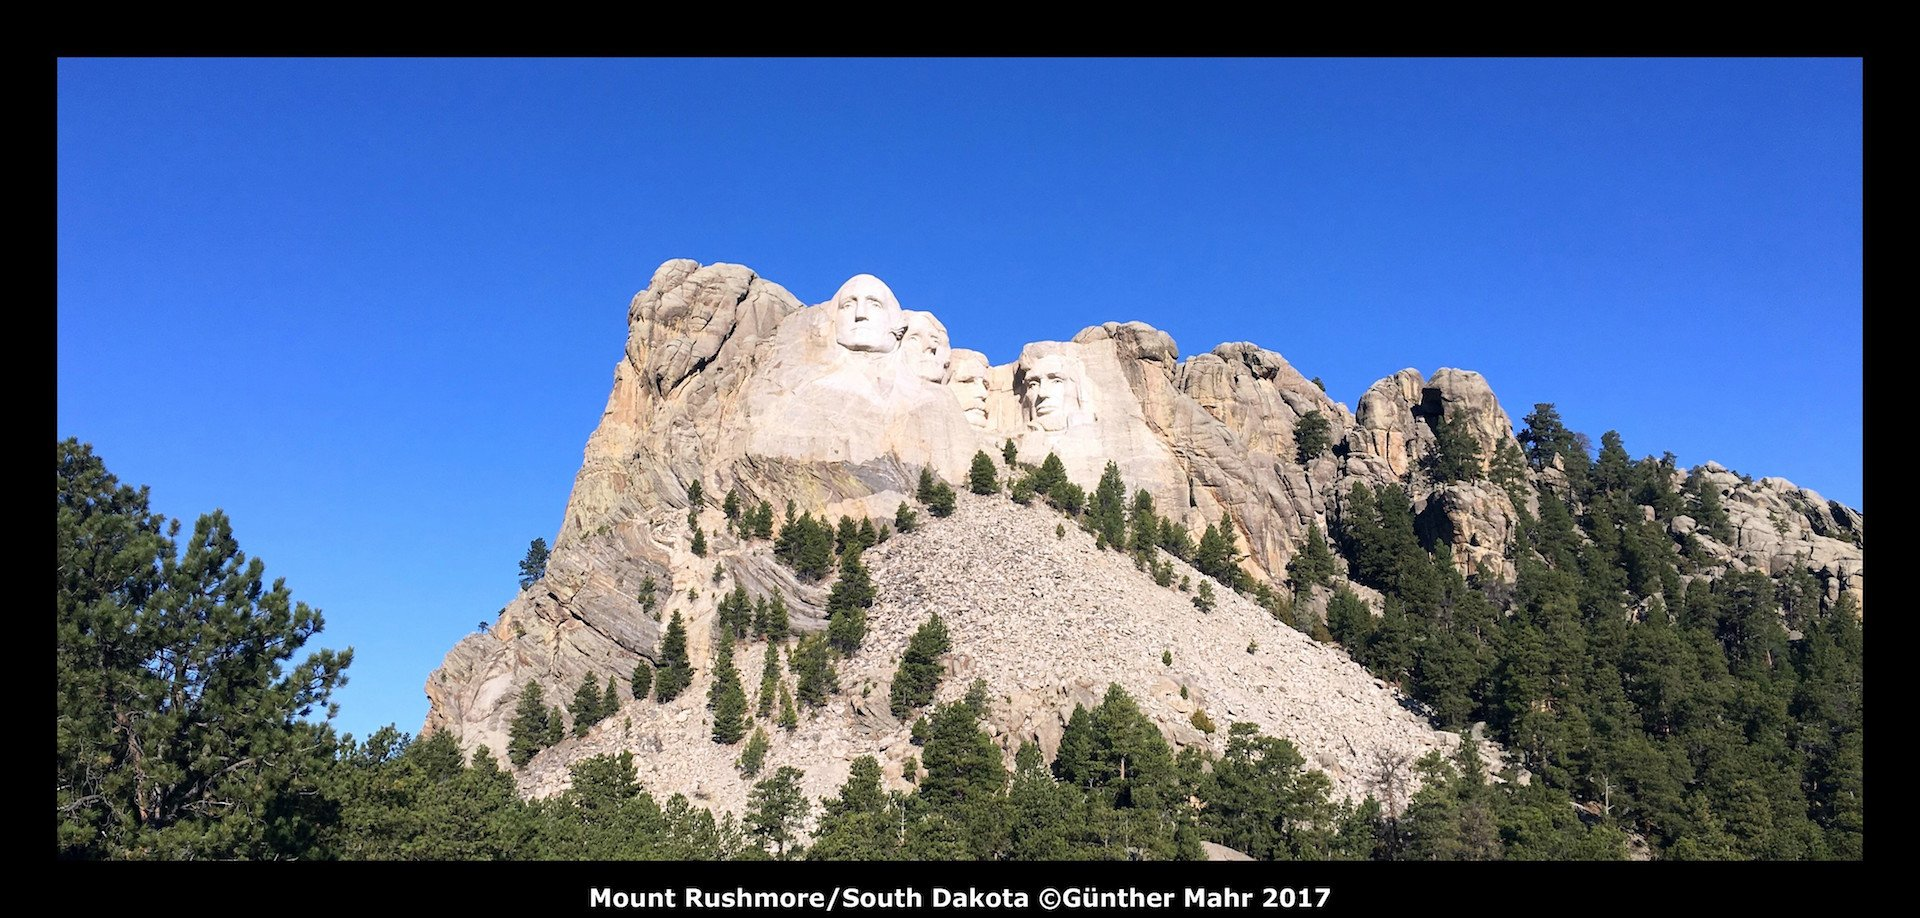 USA Road Trip Quer Etappen Mount Rushmore South Dakota